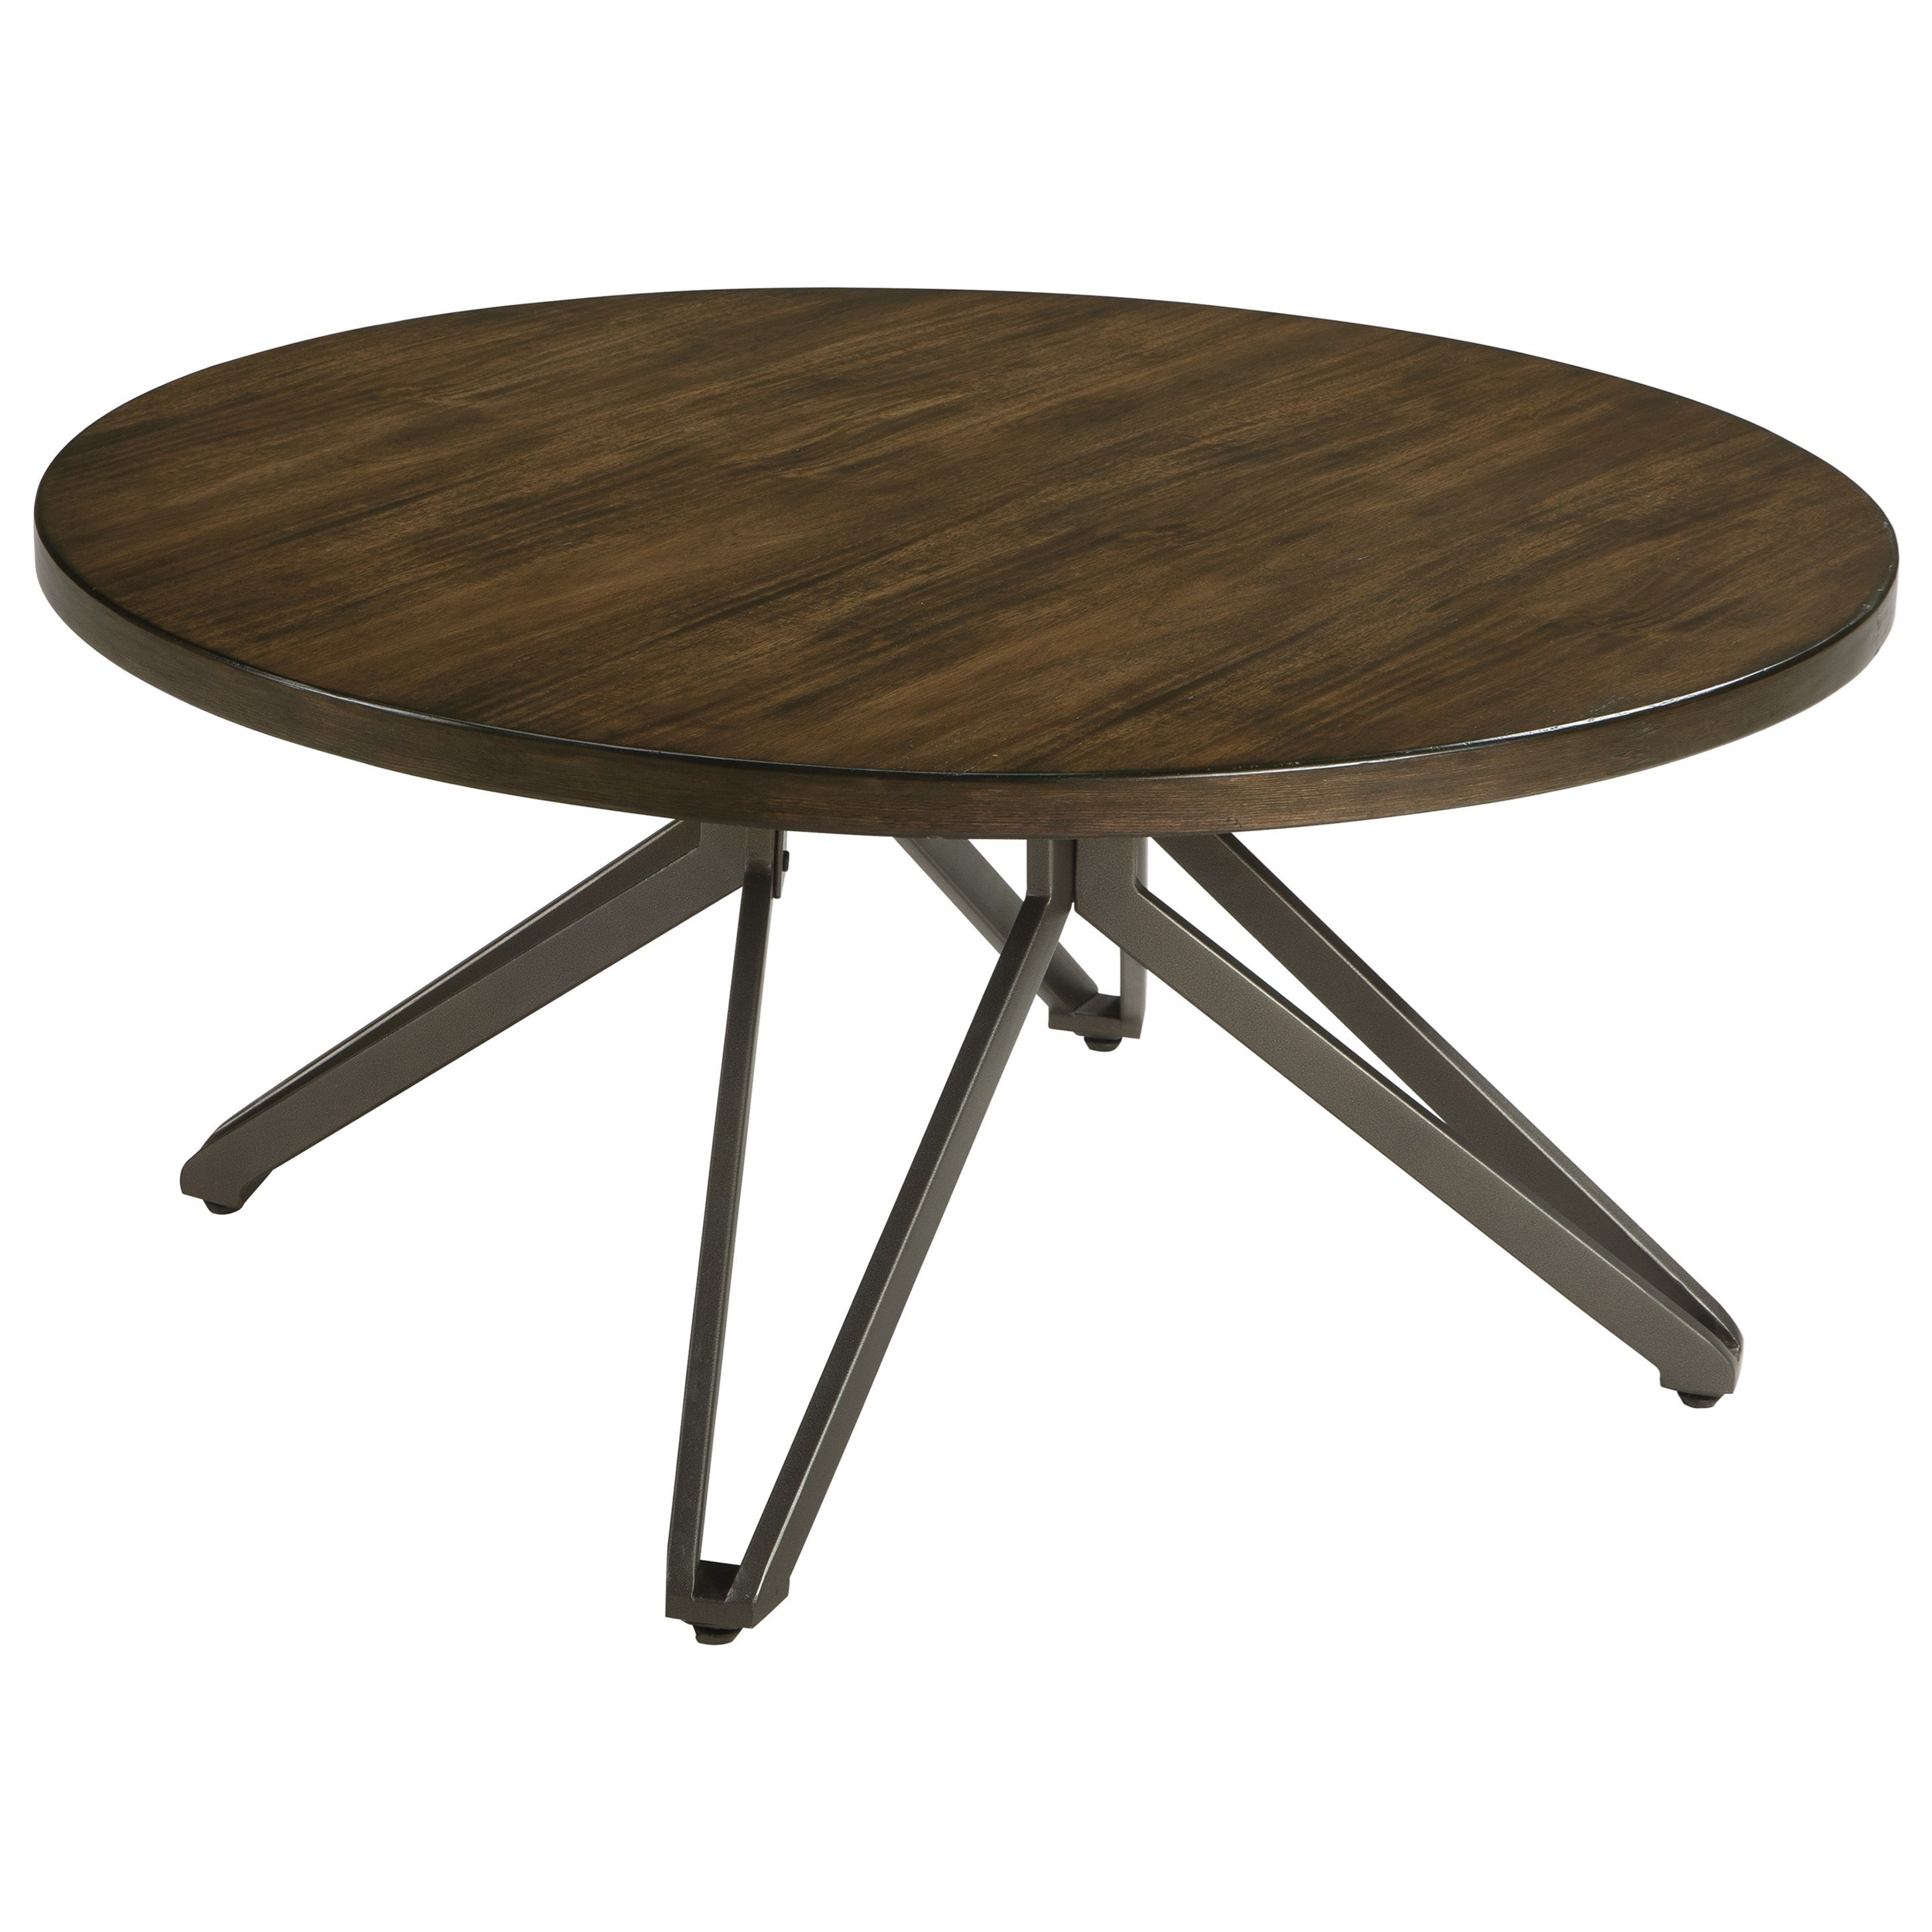 Signature Design by Ashley Tavonni Round Cocktail Table - Item Number: T476-8